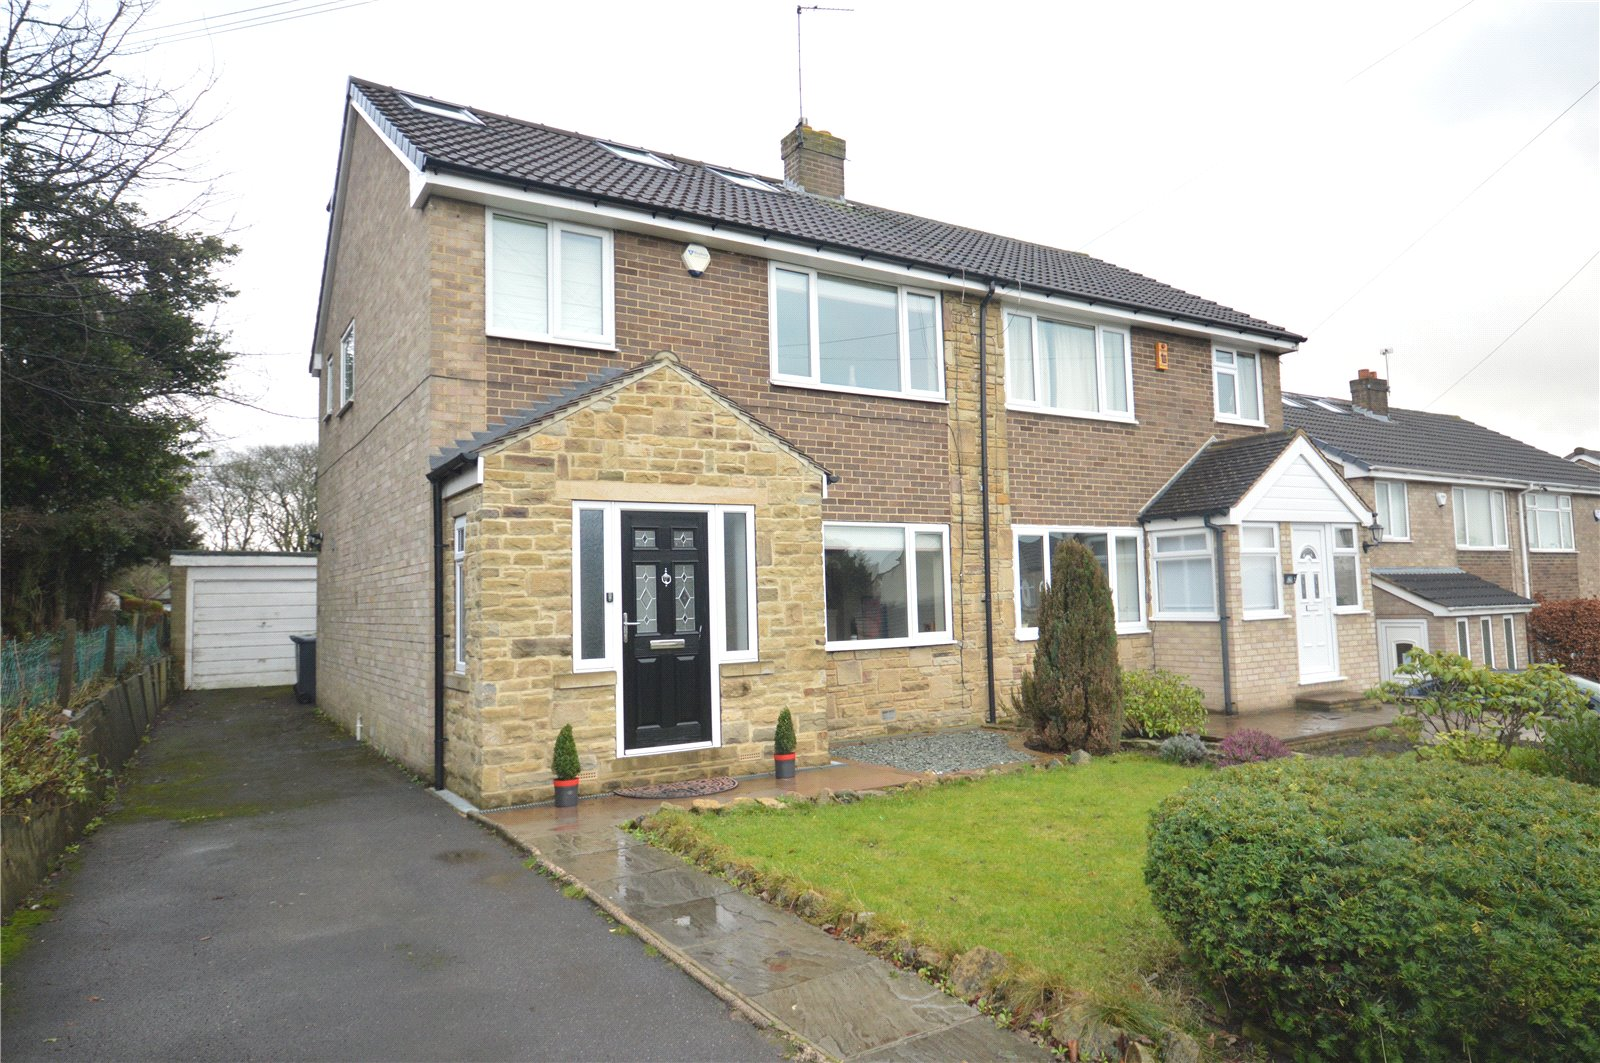 property for sale in Horsforth, exterior semi detached home